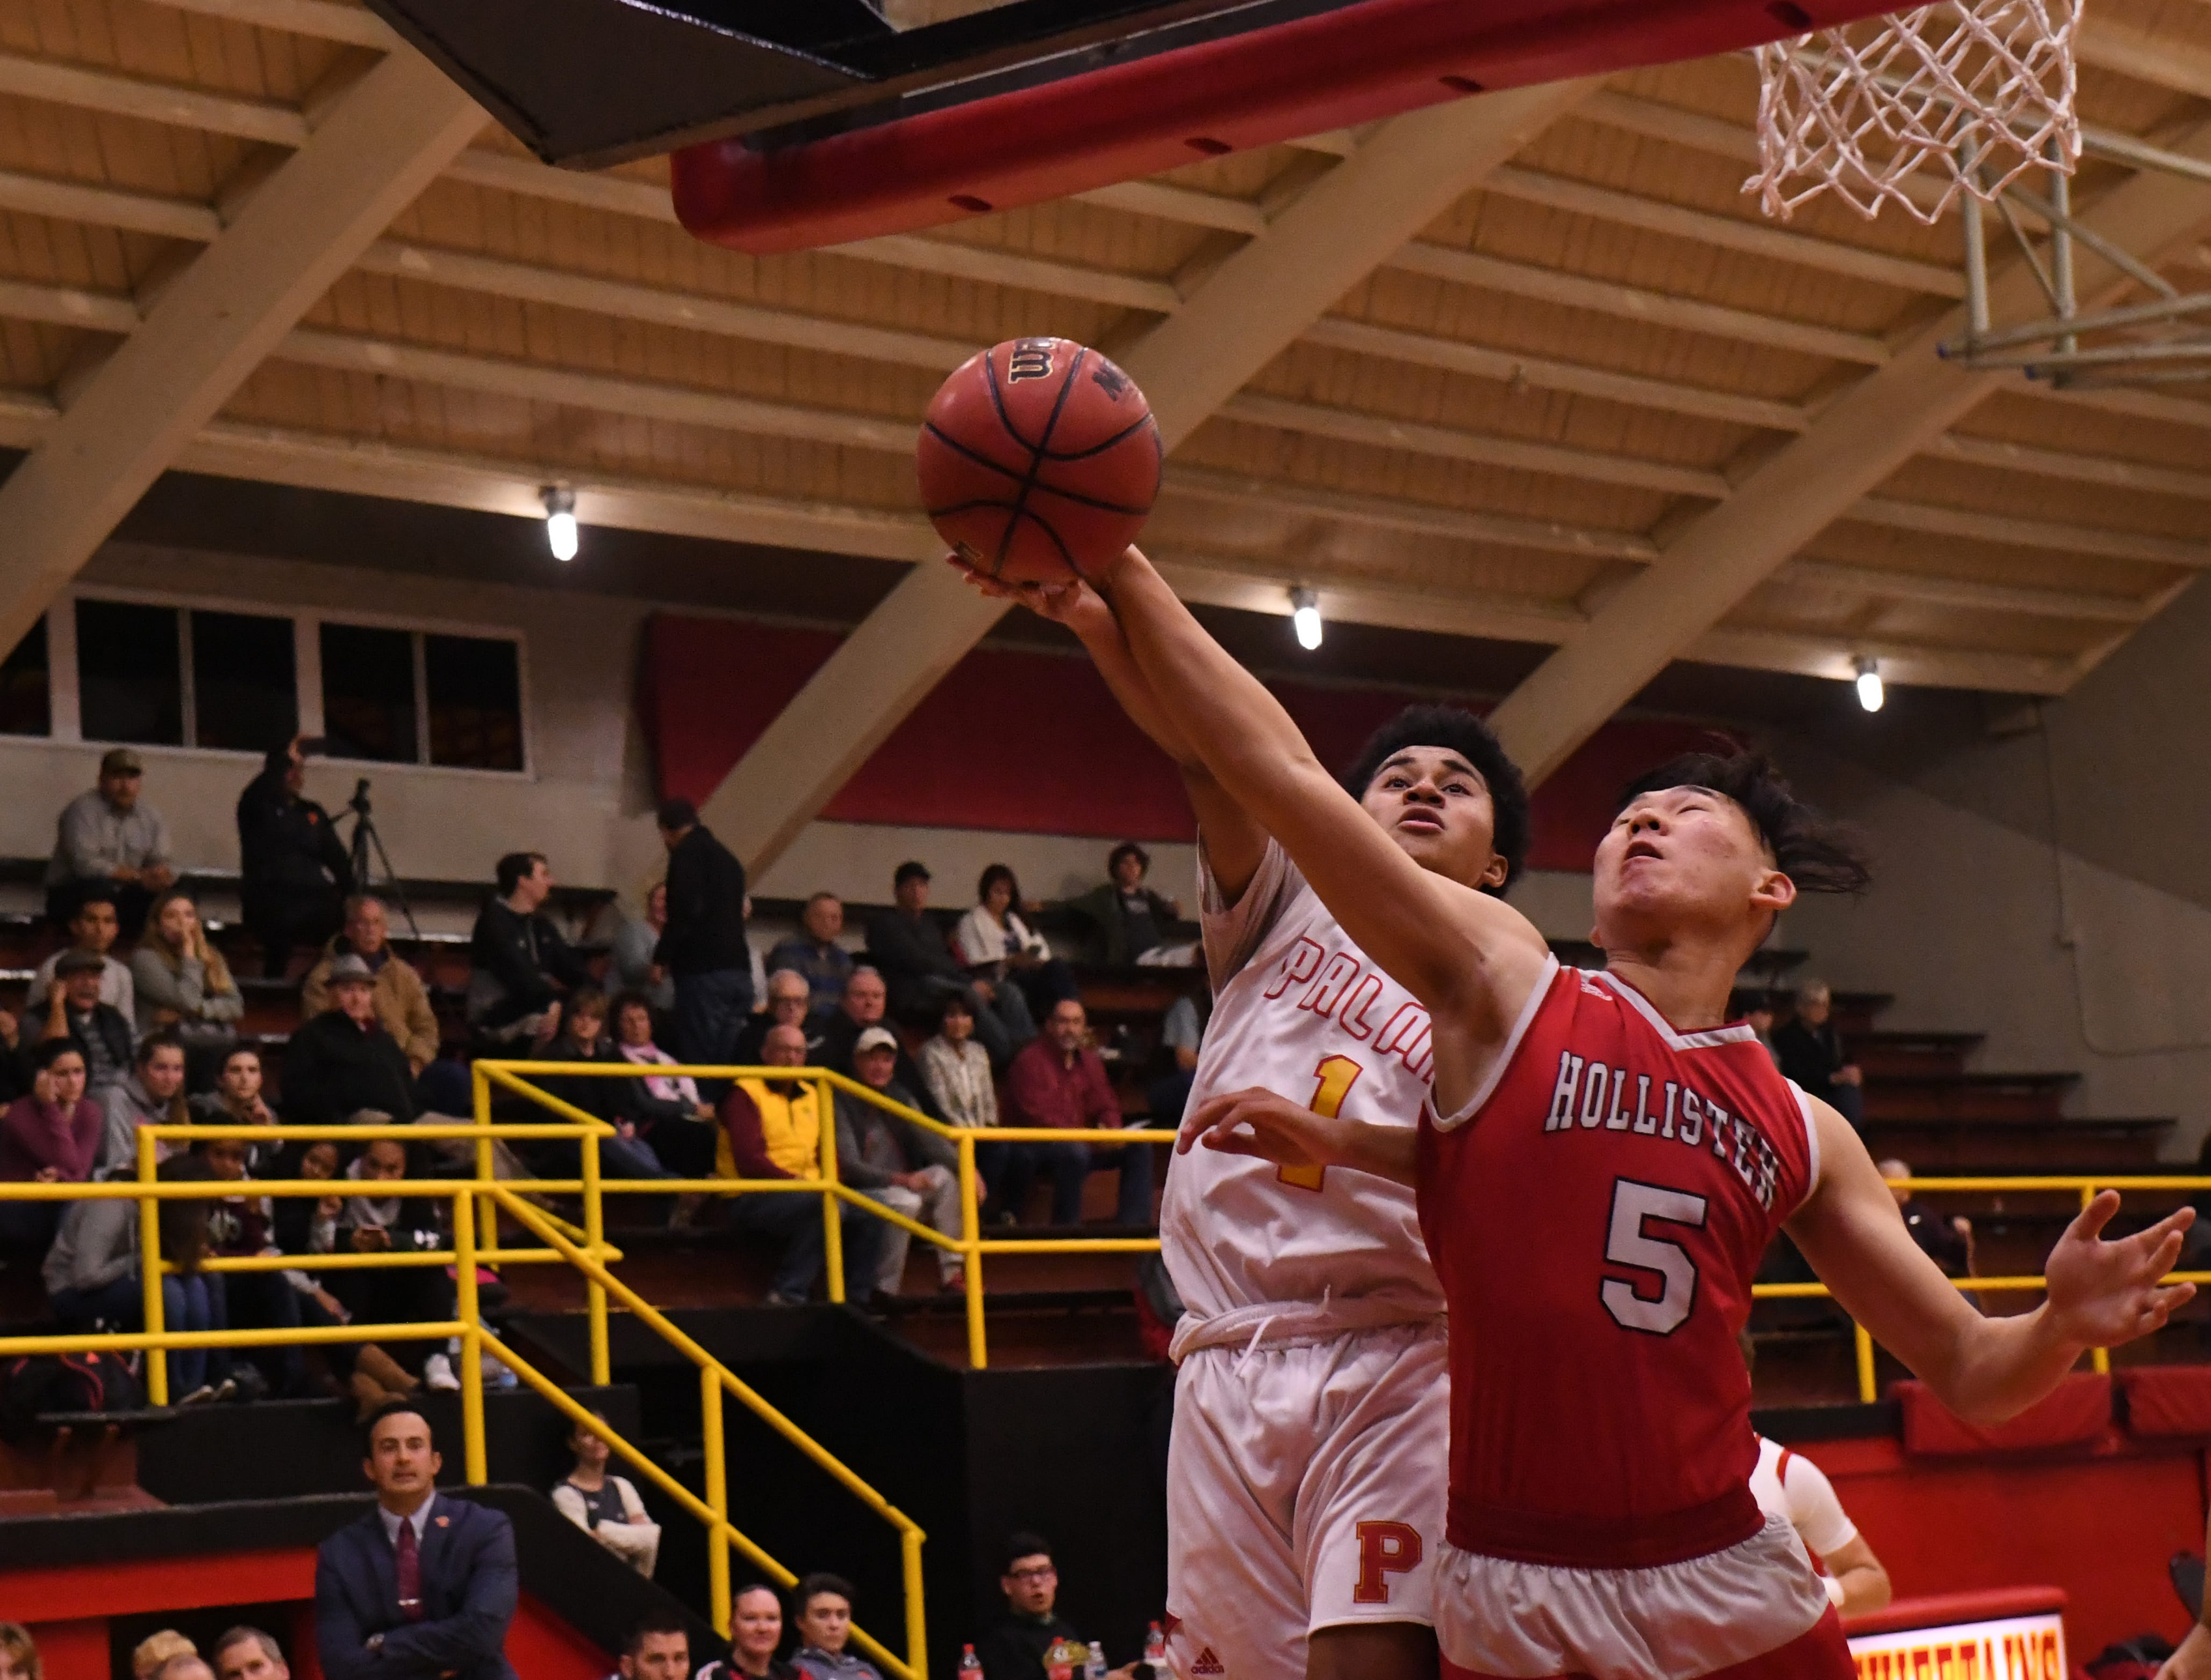 Palma guard Nate Jean-Pierre (1) tries to put a layup in while drawing a foul.